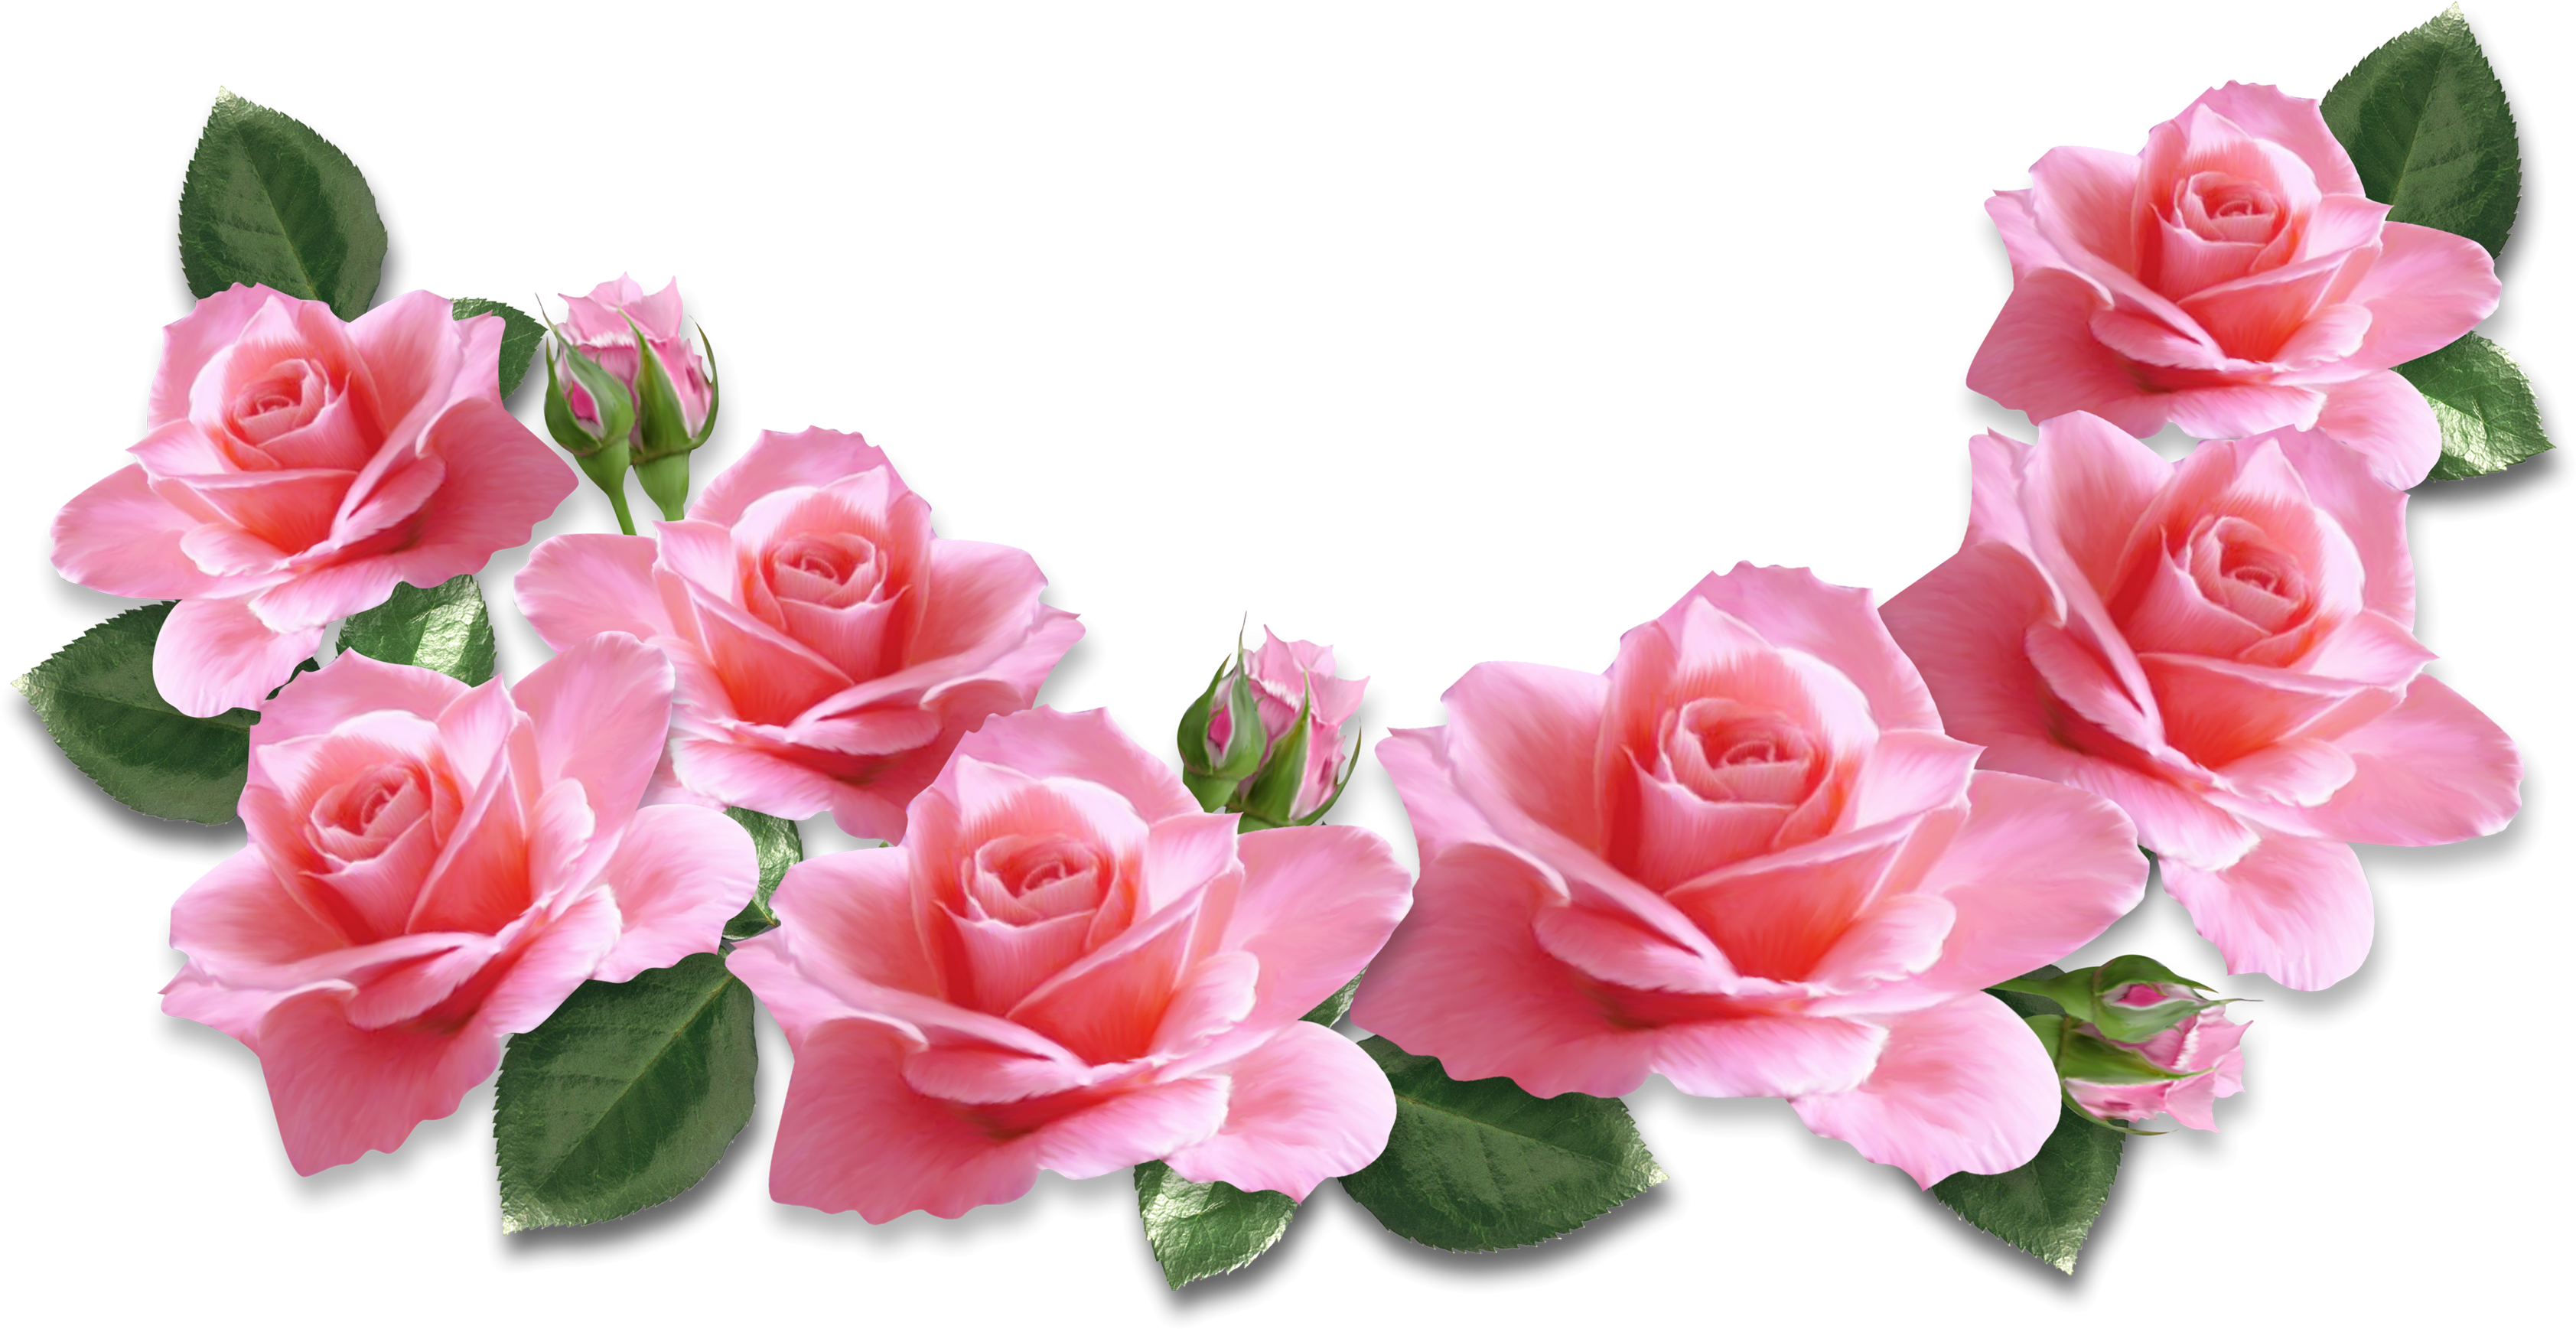 Romantic flower clipart banner freeuse library Pink Roses Decoration PNG Clipart Image | cvetia | Pinterest ... banner freeuse library